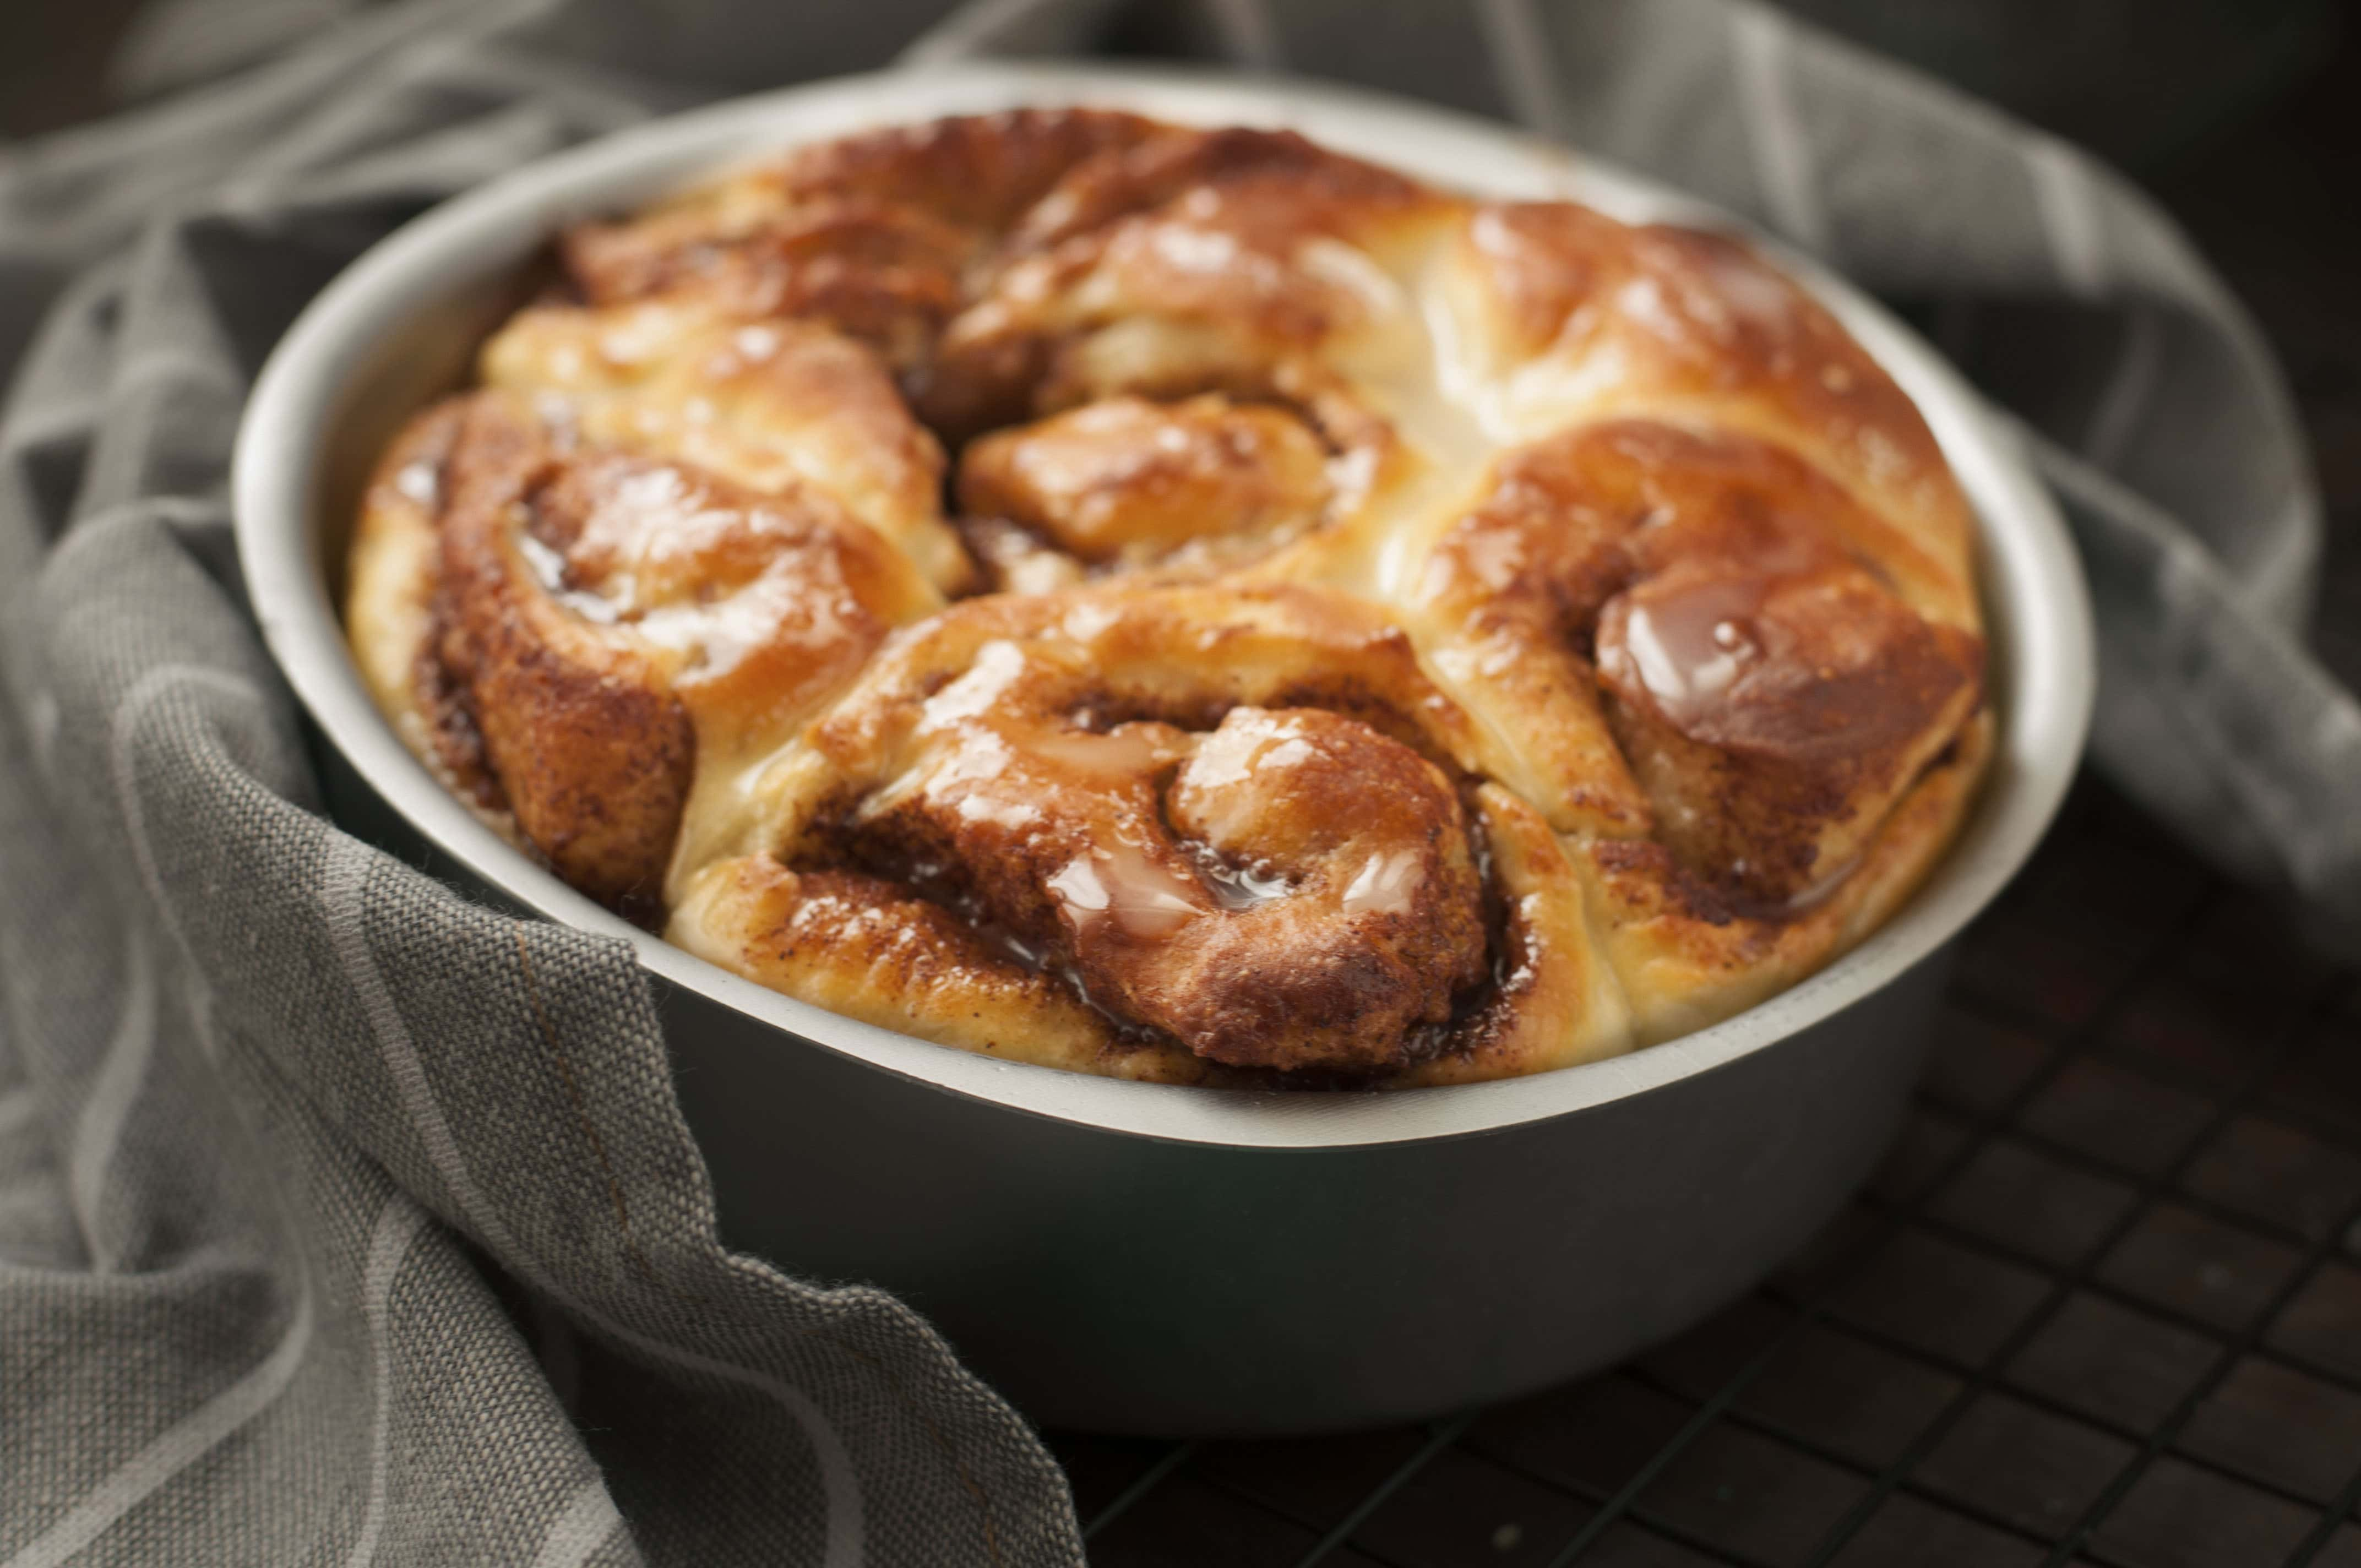 Homemade Cinnamon Buns with Sugar Glaze